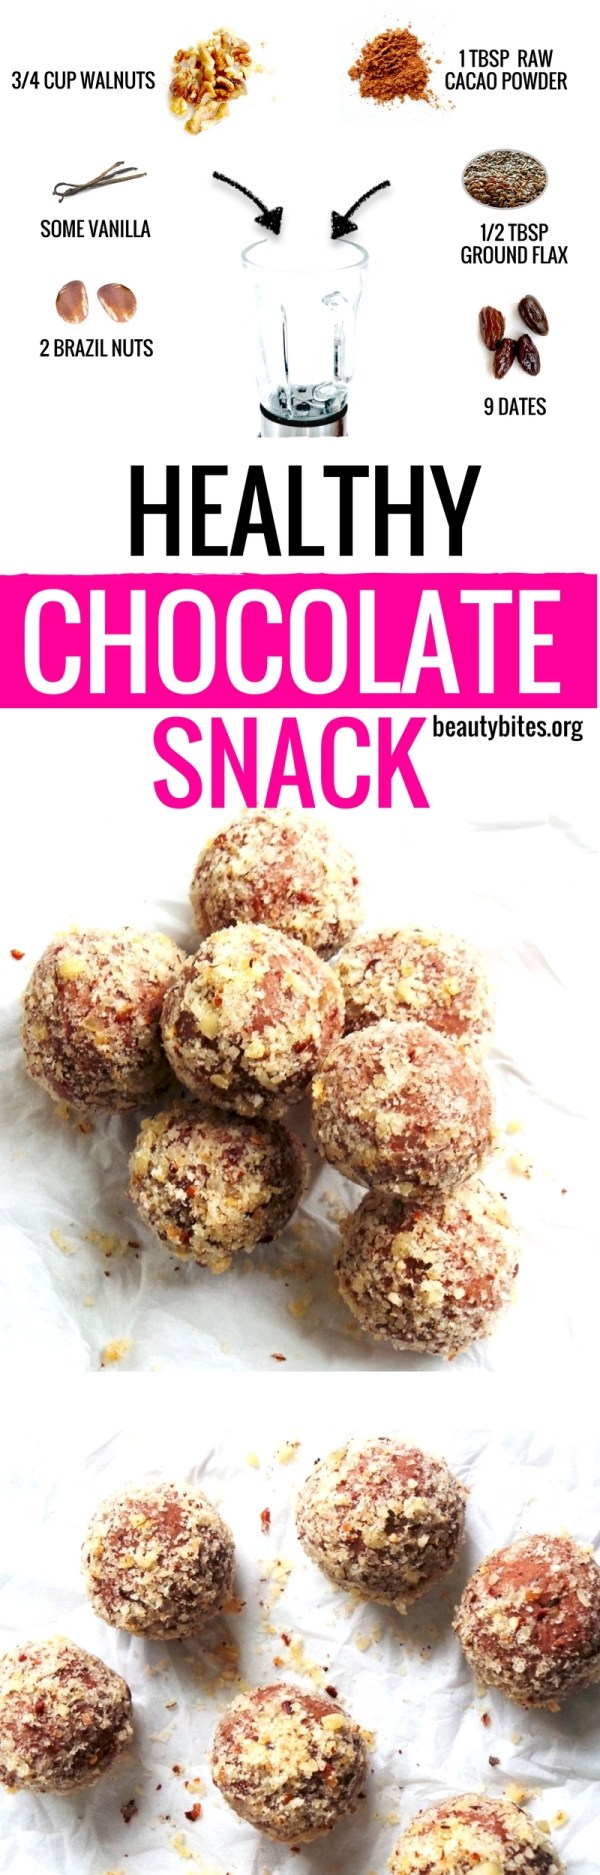 Satisfy your chocolate cravings with this healthy snack! These healthy chocolate balls are easy and quick, full of antioxidants, good source of omega-3's, paleo, vegan and gluten-free! | beautybites.org | easy healthy snack recipe